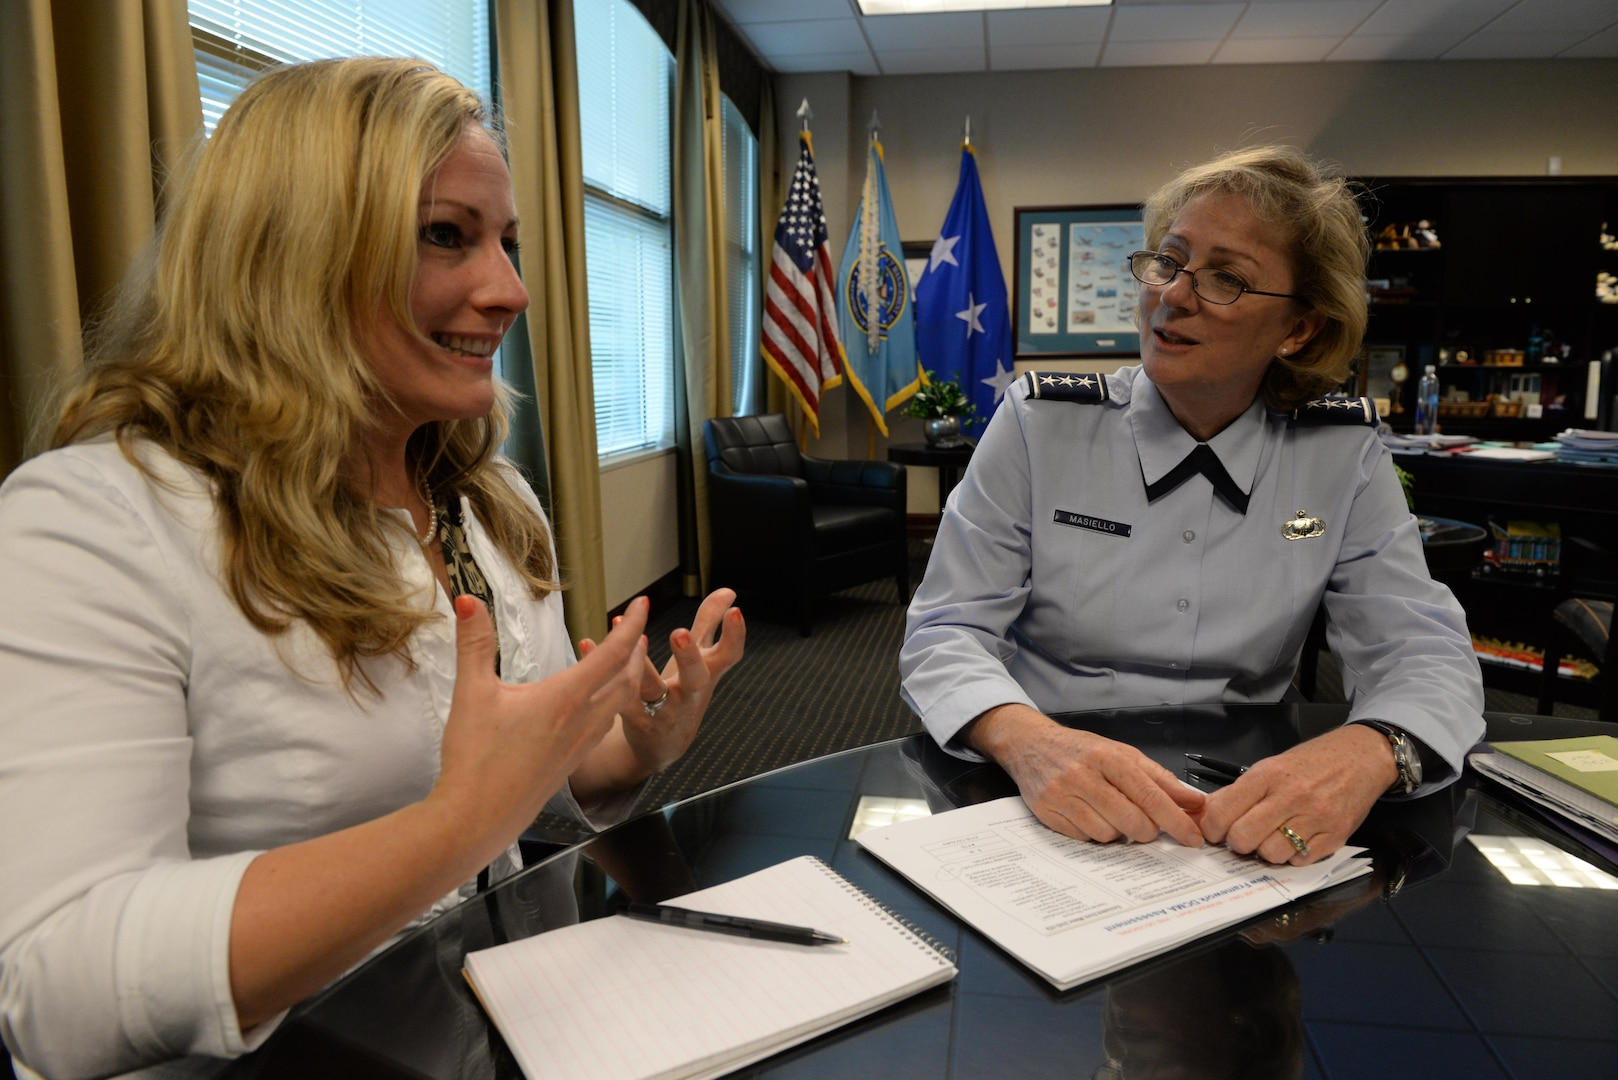 Rollins takes advantage of office time with agency Director Air Force Lt. Gen. Wendy Masiello, during a recent job shadowing opportunity at the agency headquarters.